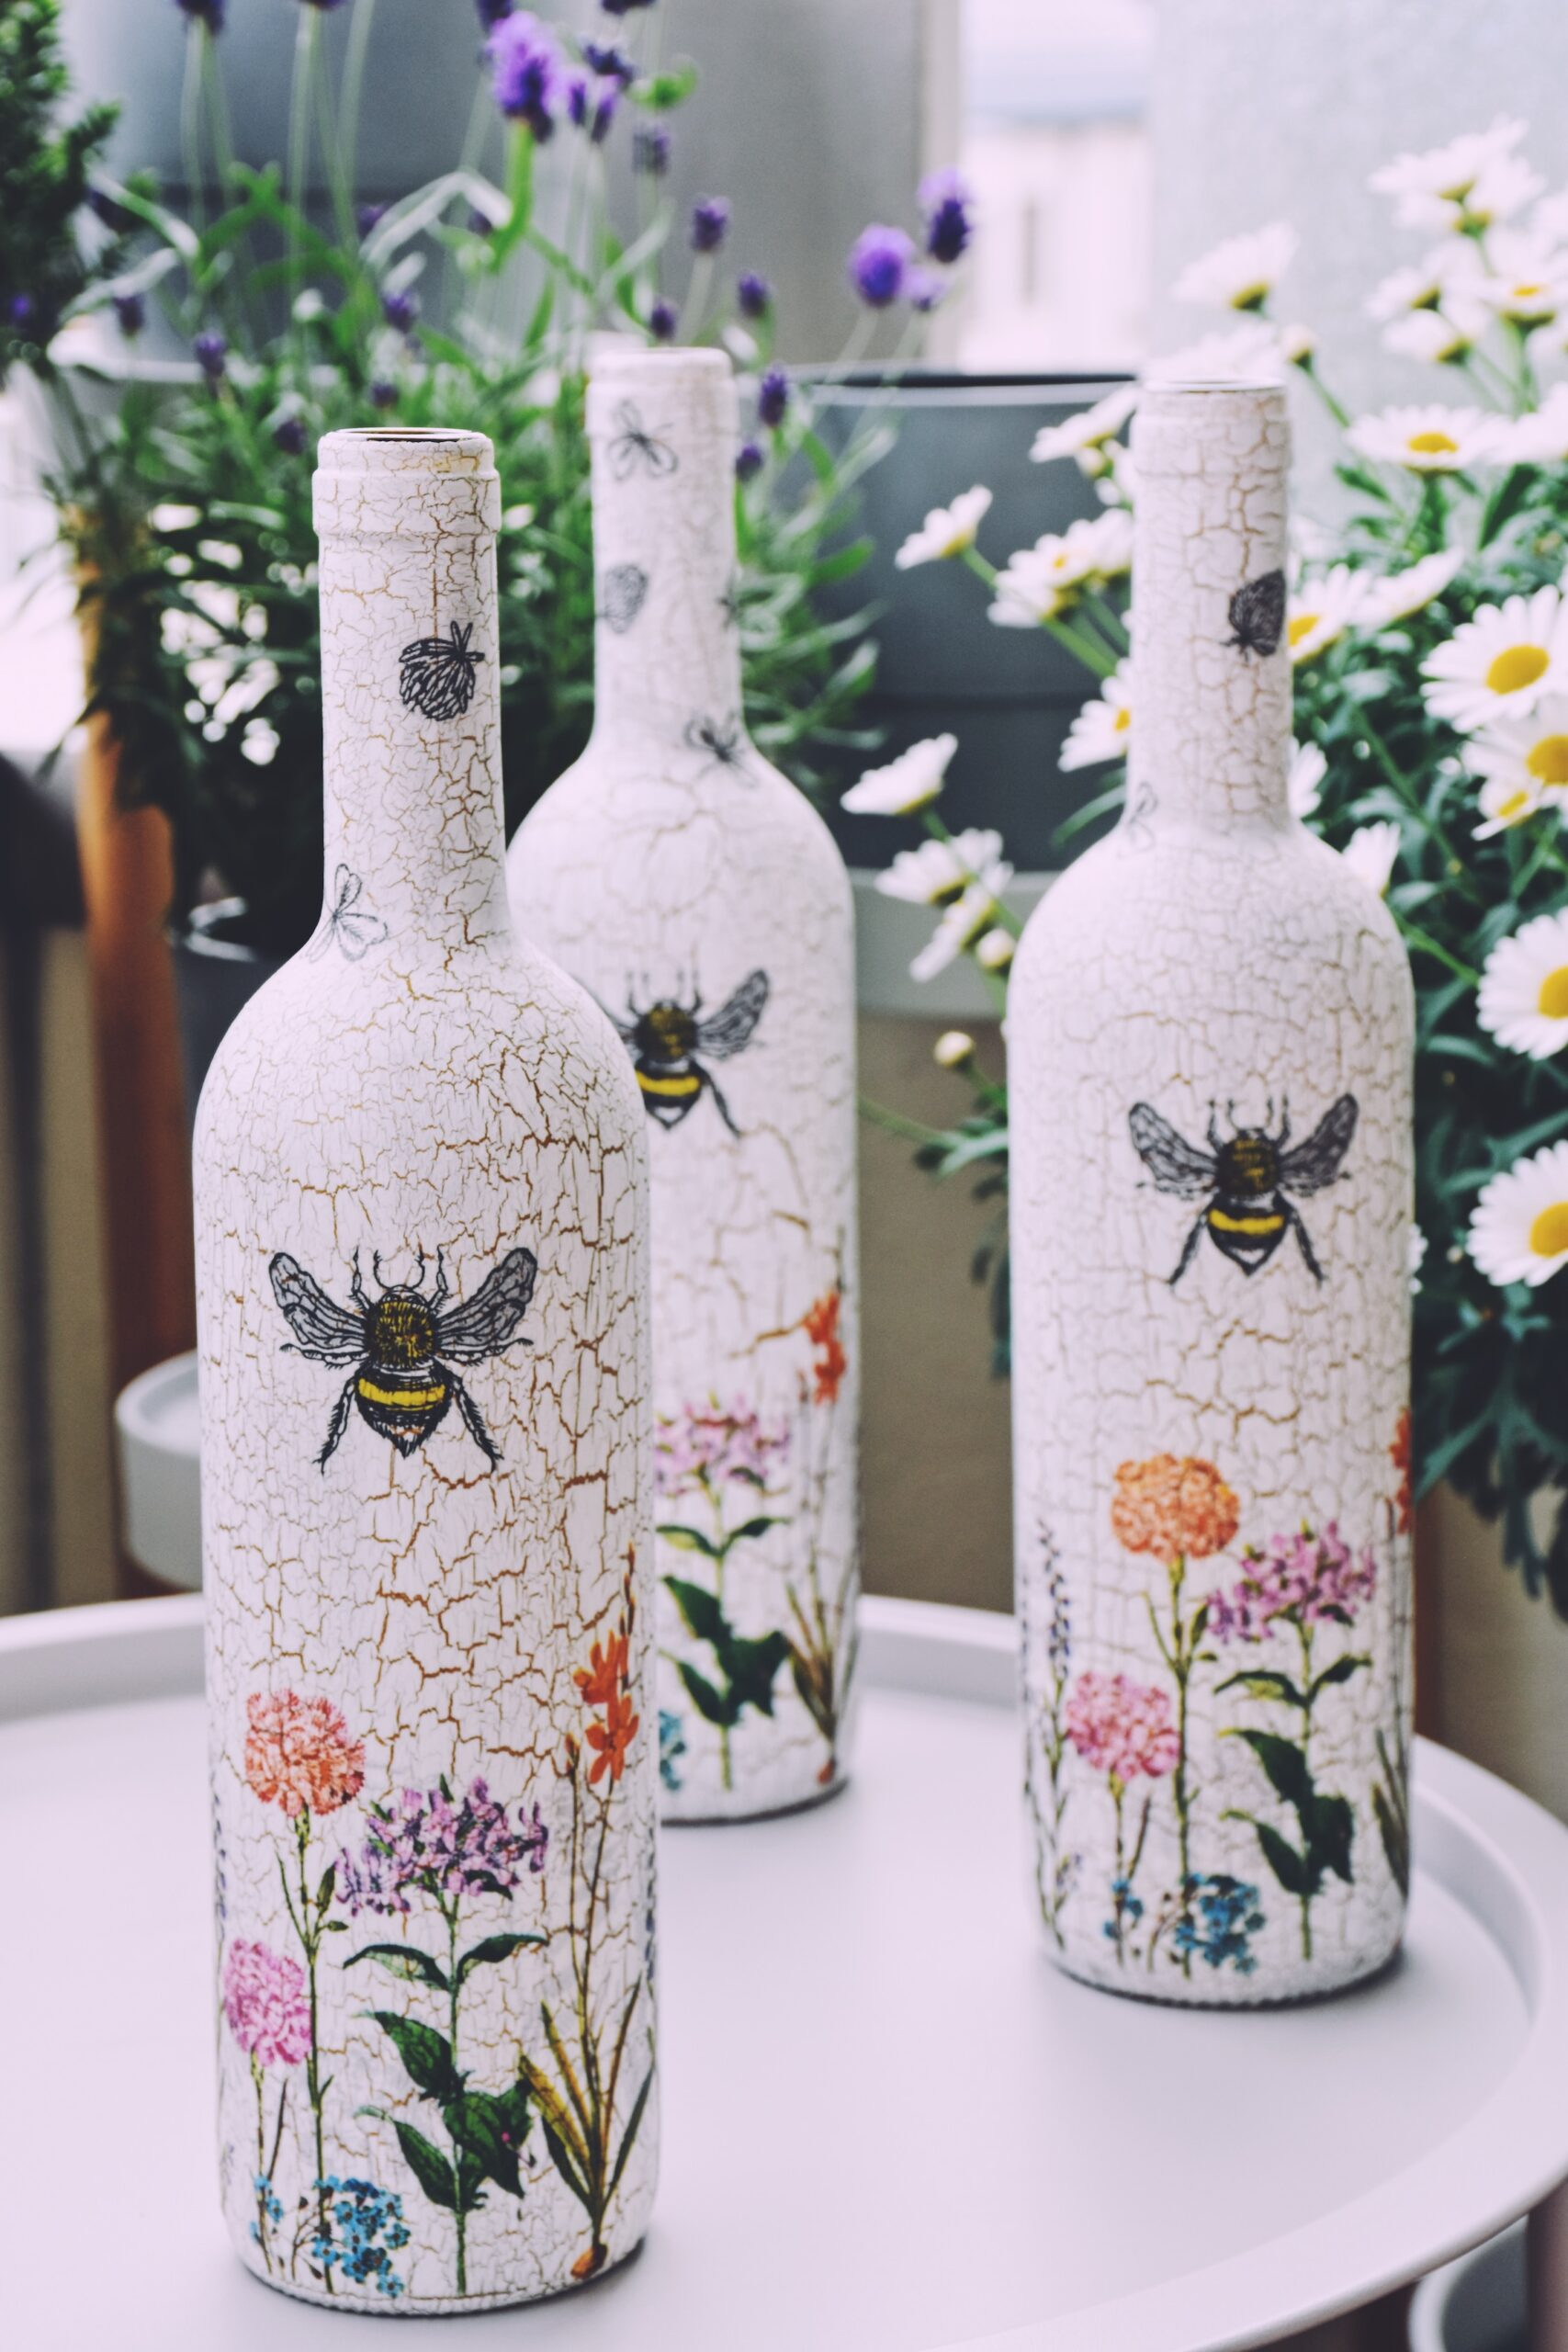 Upcycled glass bottles as watering cans in the urban garden